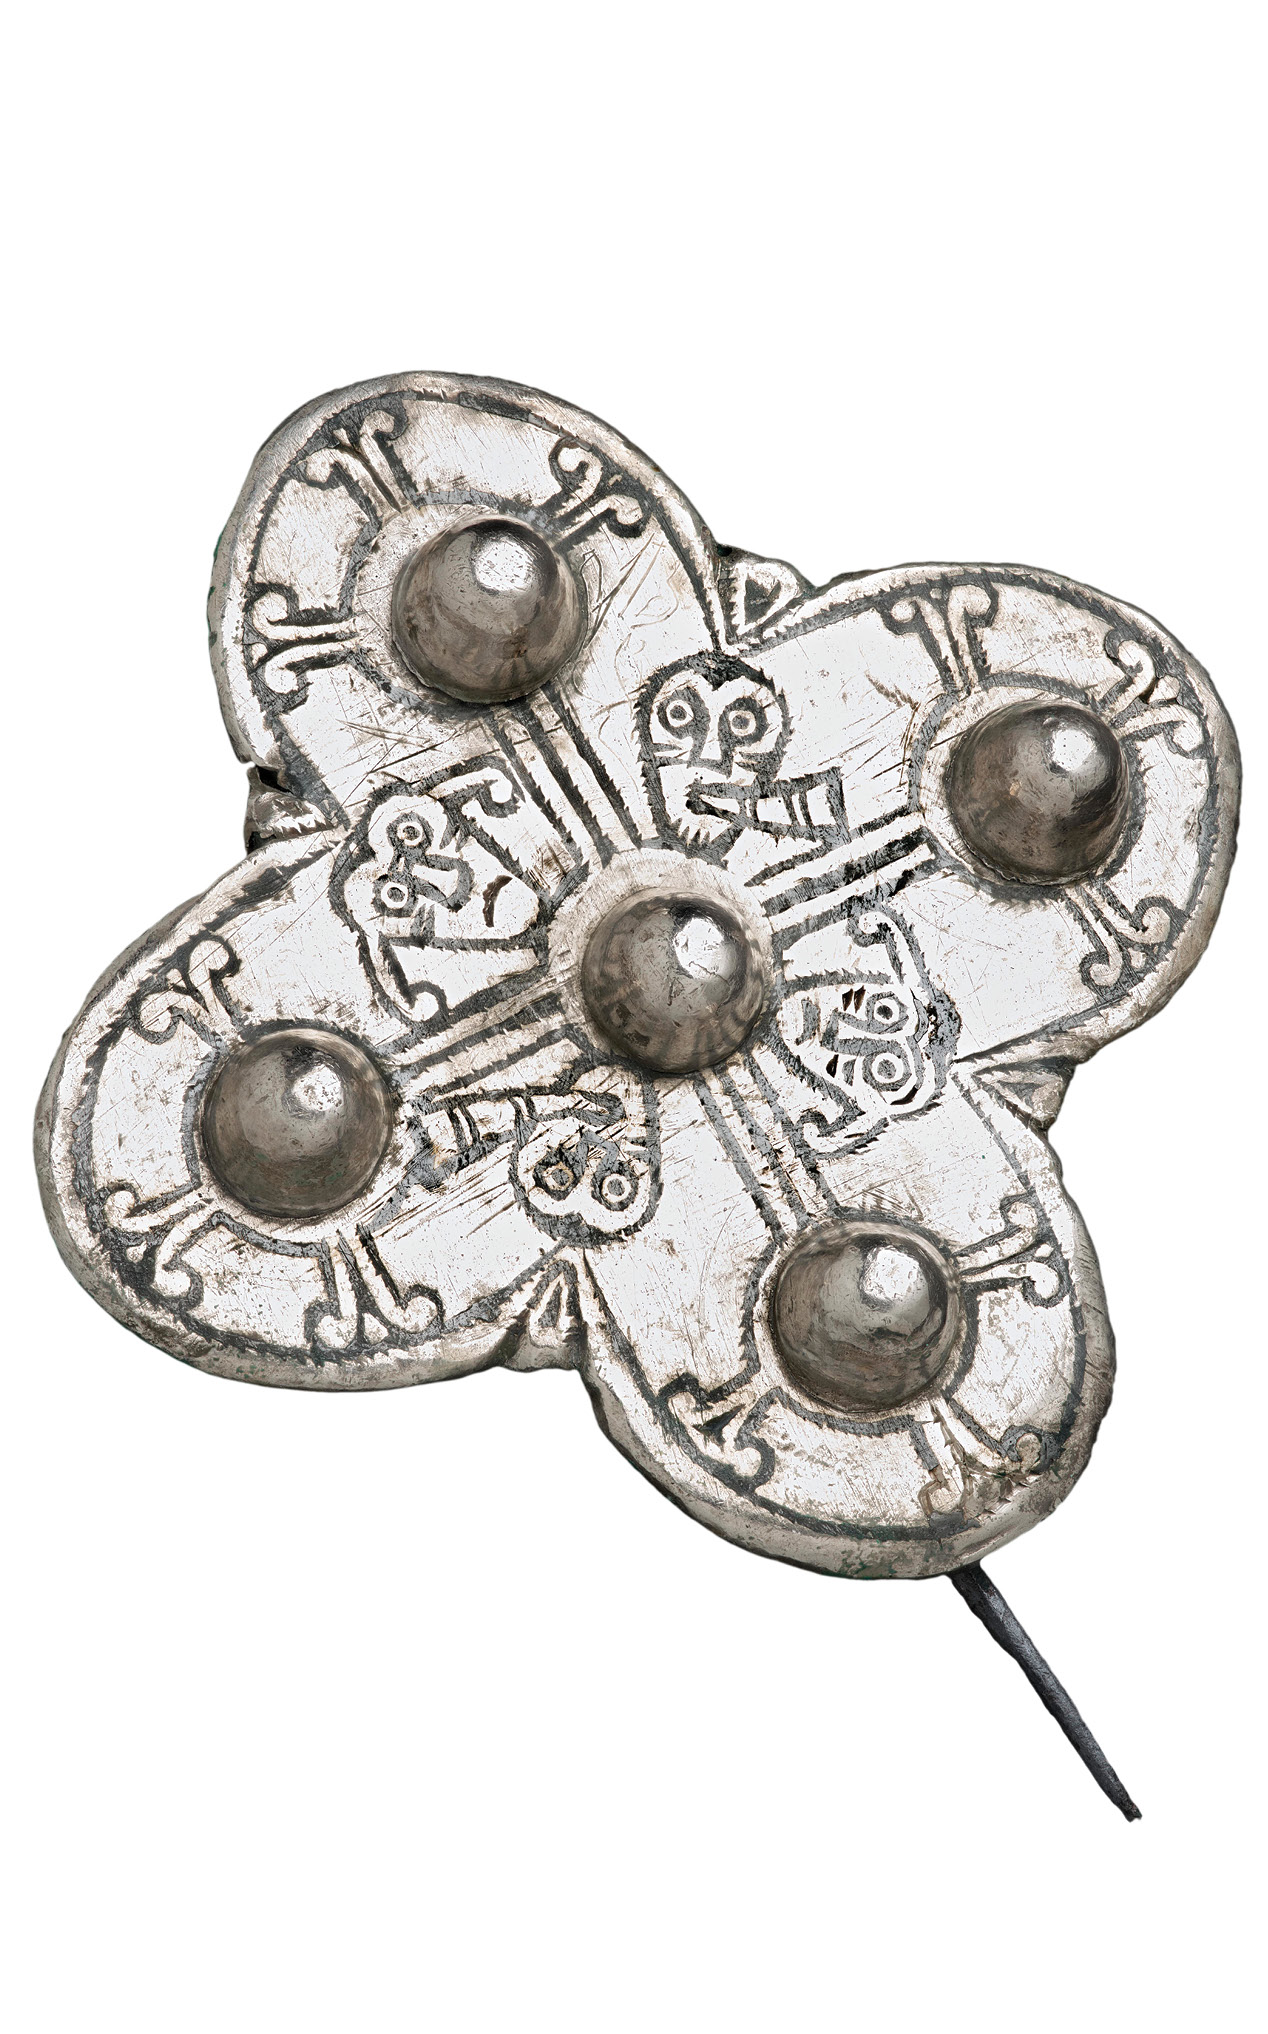 left One of two Late Anglo-Saxon silver quatrefoil brooches depicting two of the five senses sight and hearing. On this example exaggerated ears are ringing from the blowing of blast horns.